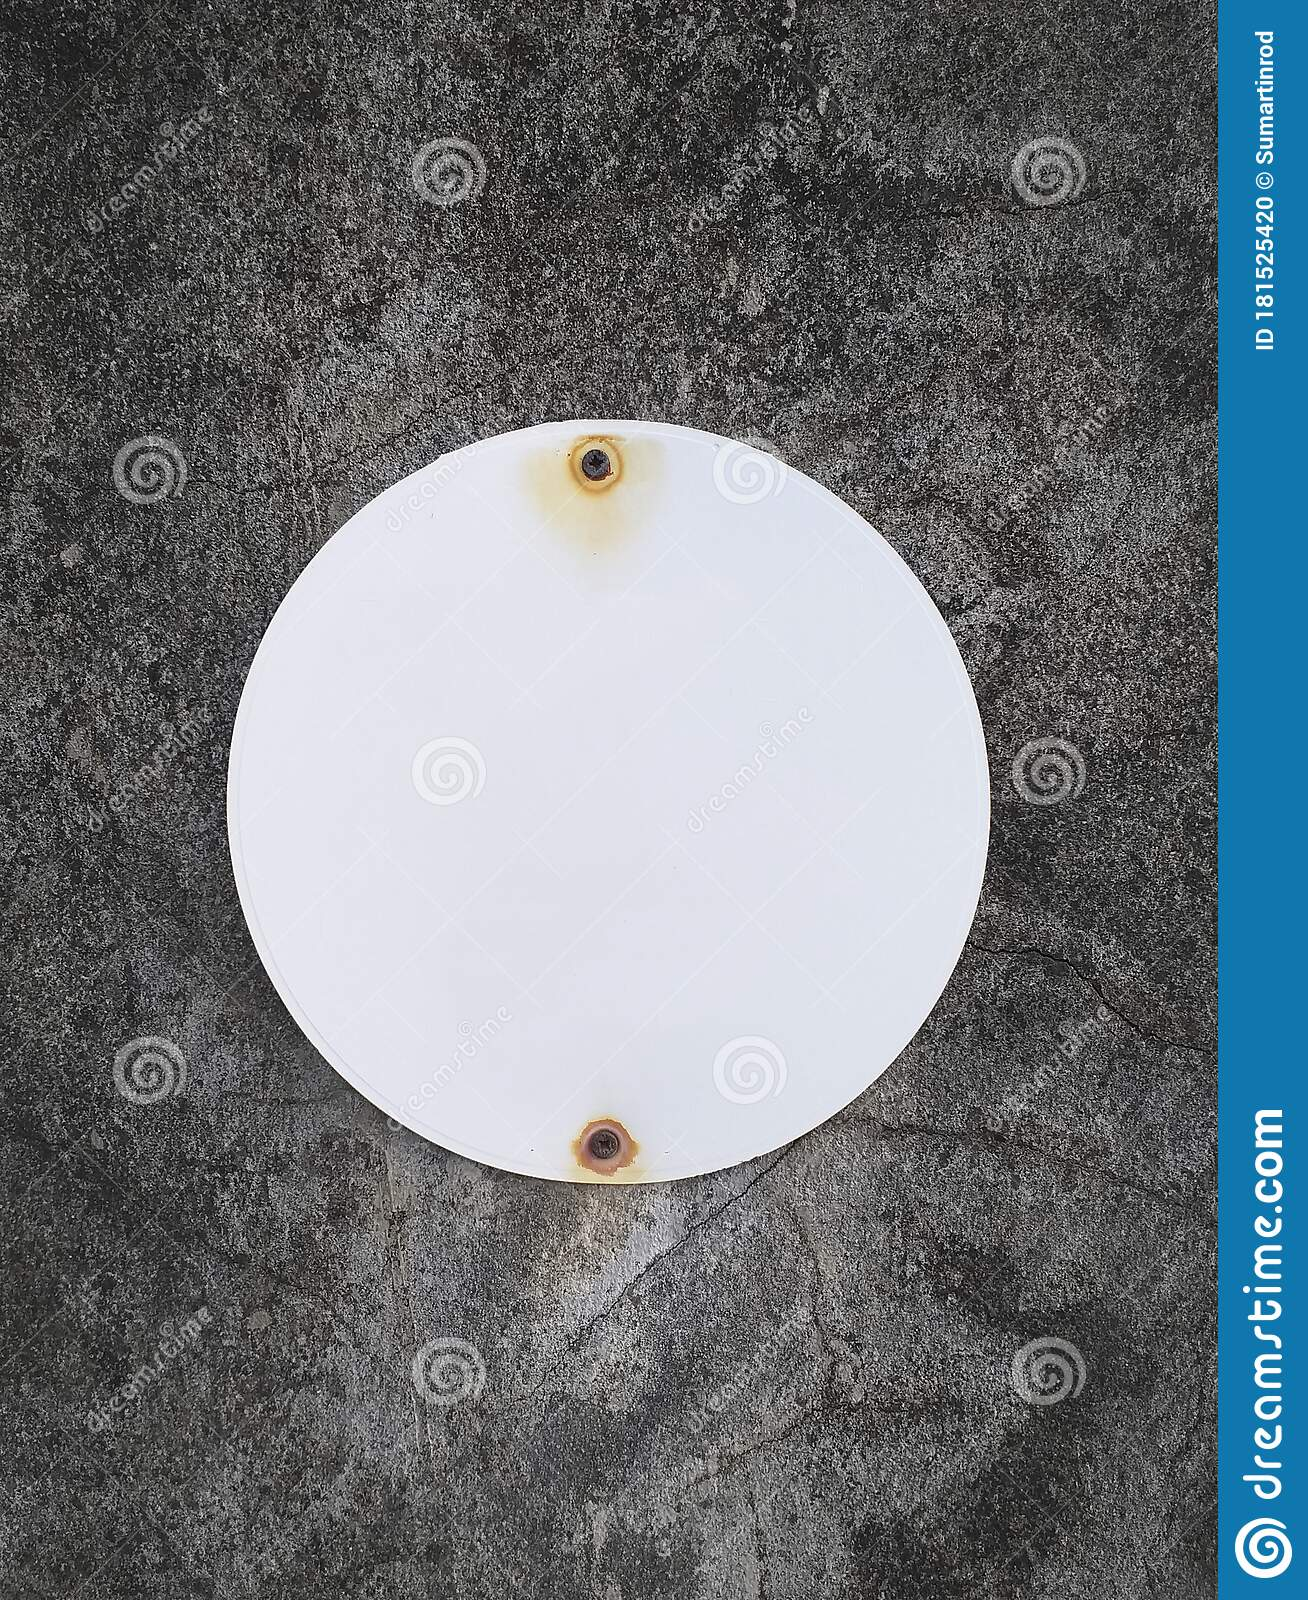 White Round Sheet Metal With Rusty Holes On Rough Gray